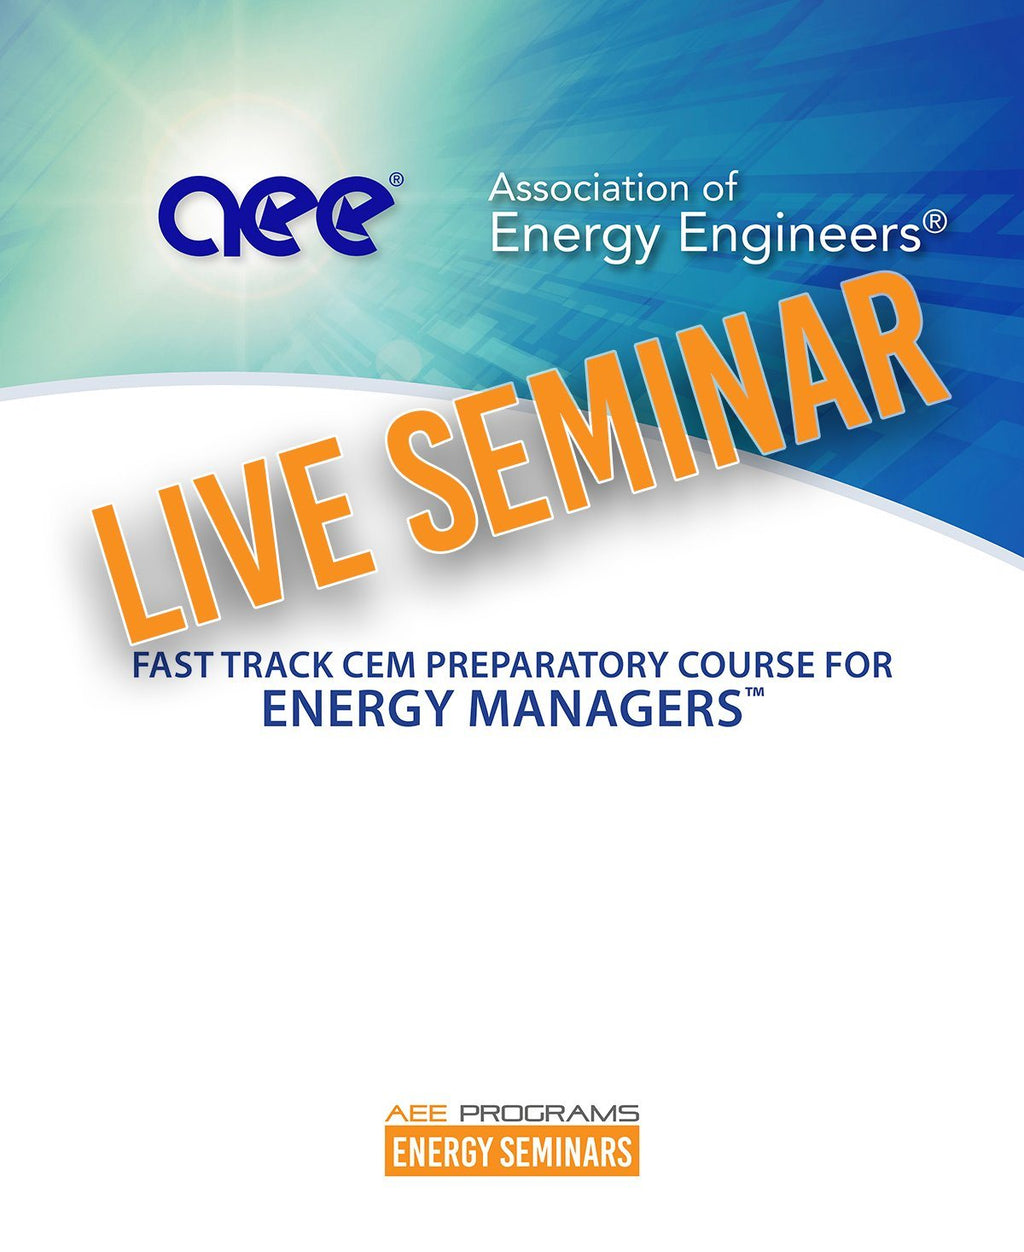 Fast Track CEM Preparatory Course For Energy Managers™ - AEE Programs